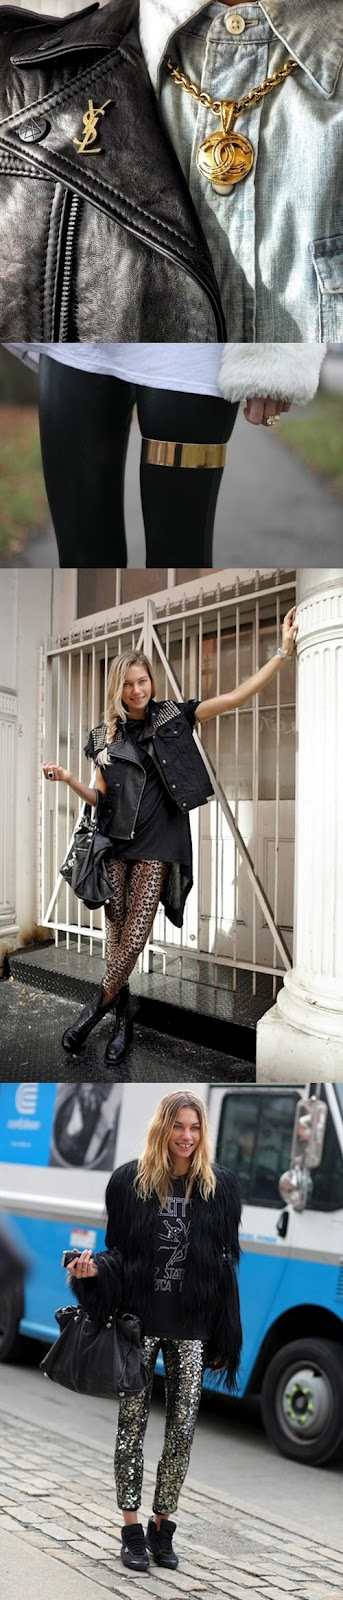 Sequin Pants, Studded Leather Vest, YSL, Jessica Hart